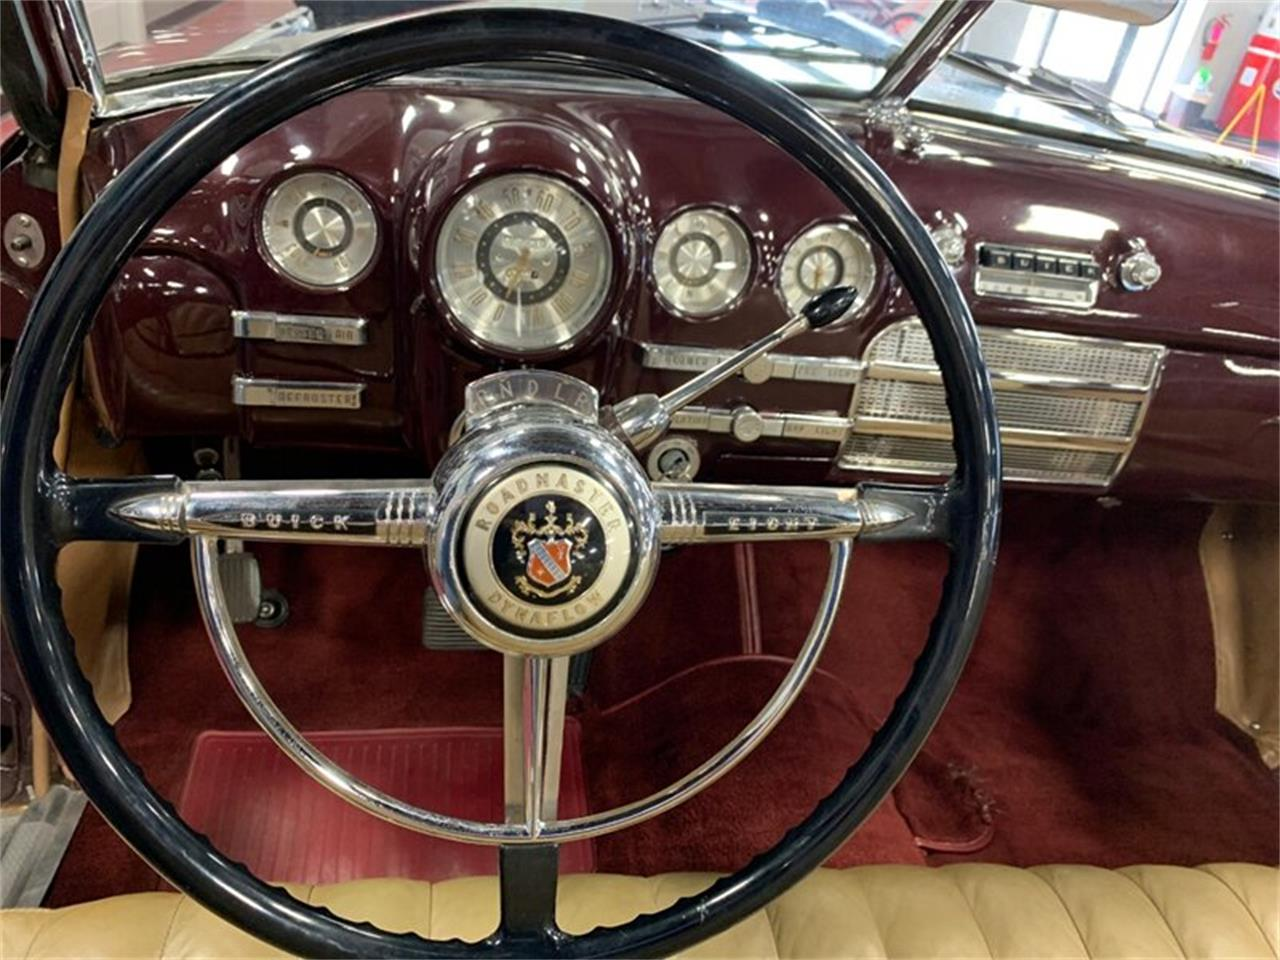 1949 Buick Roadmaster for sale in Bismarck, ND – photo 26